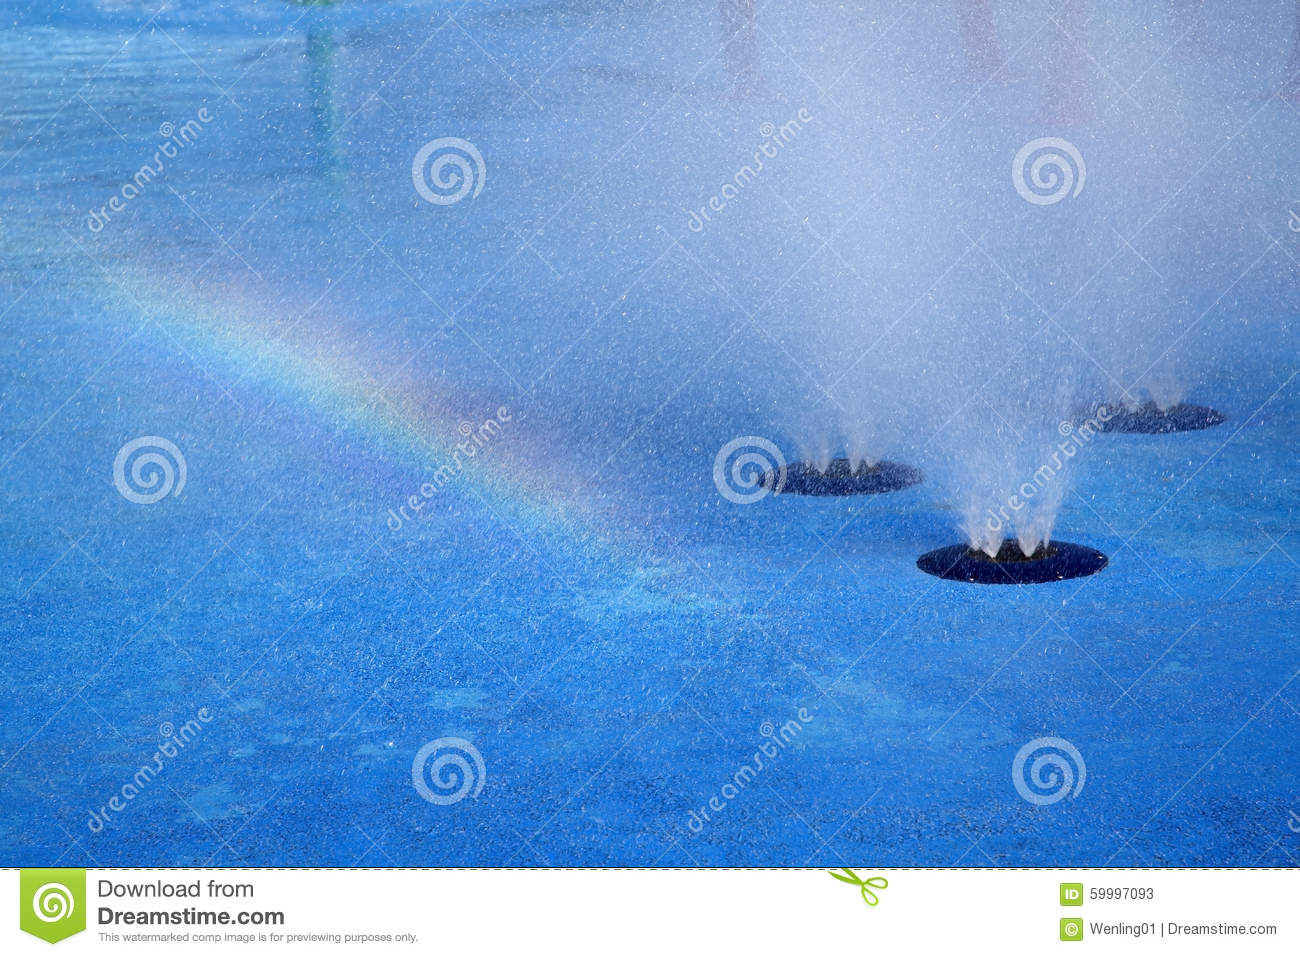 Rainbow and water fountain background